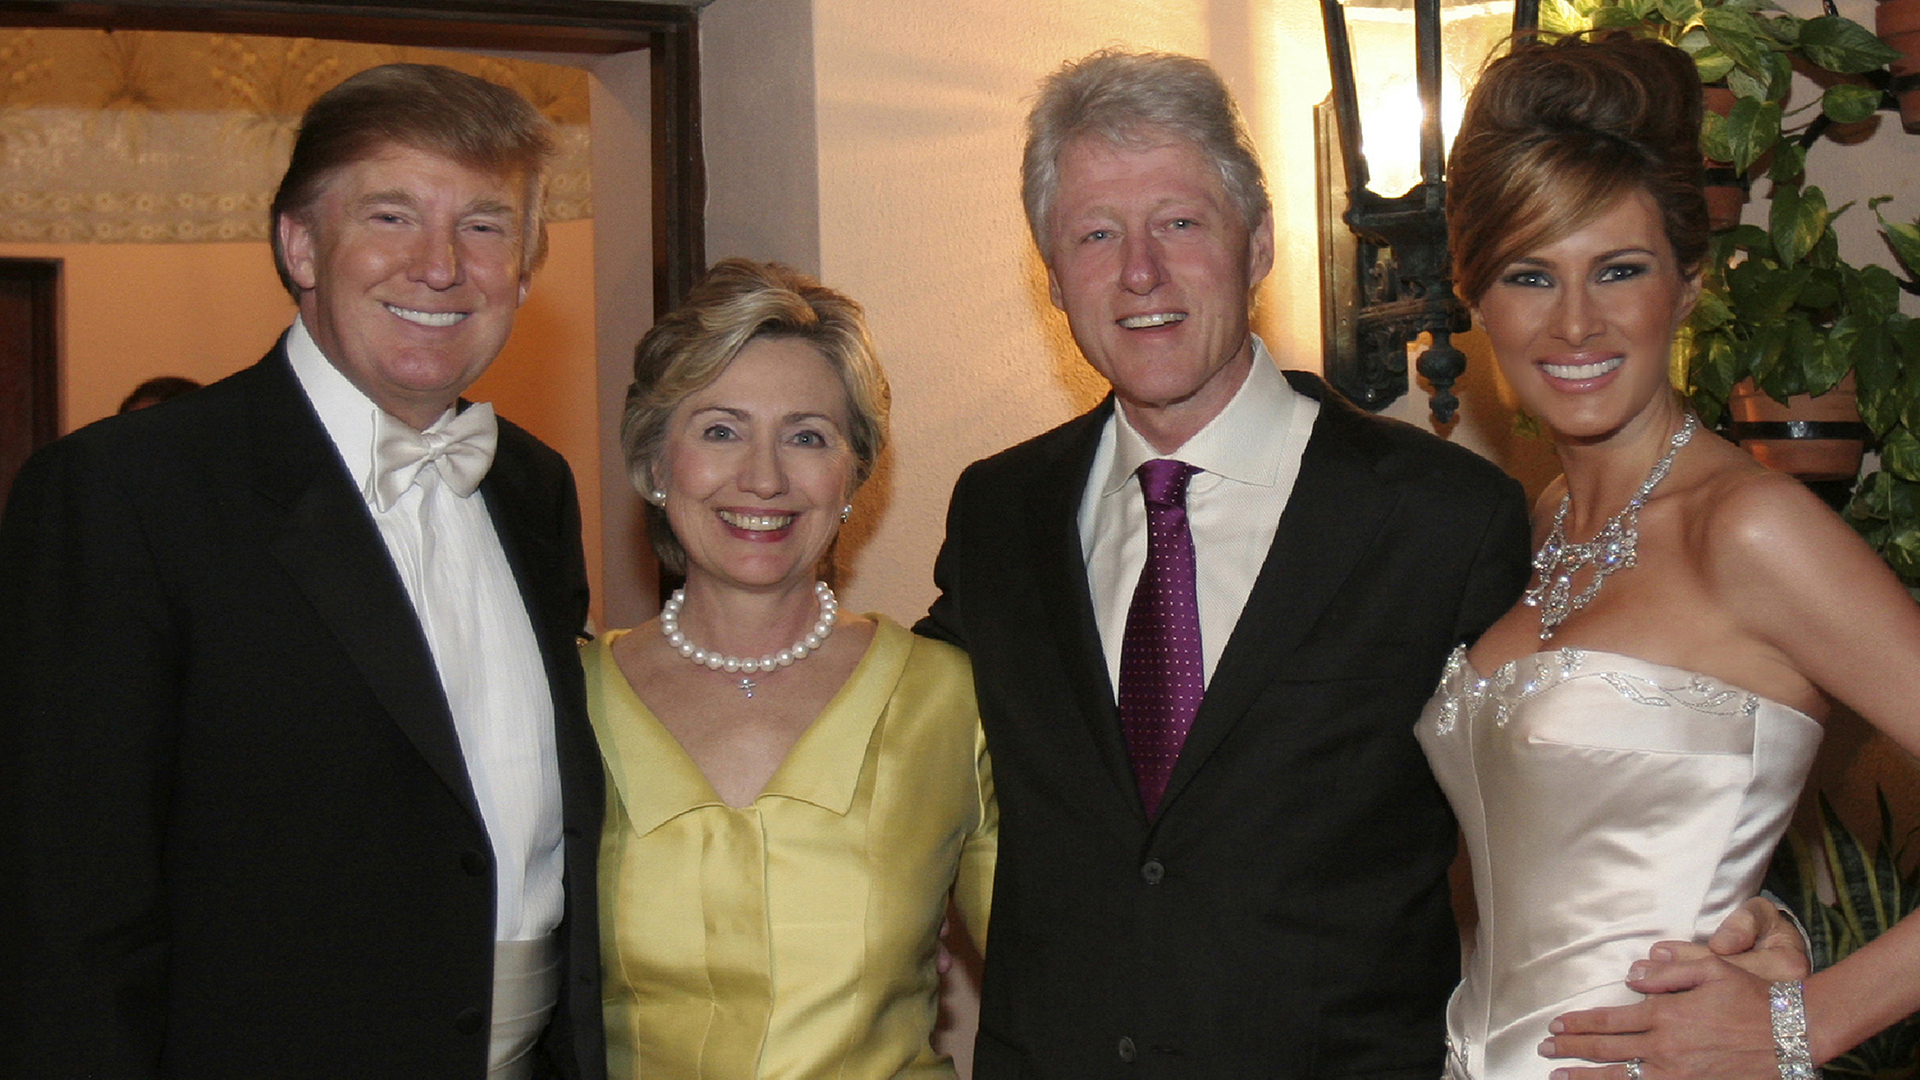 Trump And Hillary Are So Ridiculously Unpopular It Makes This Election ...